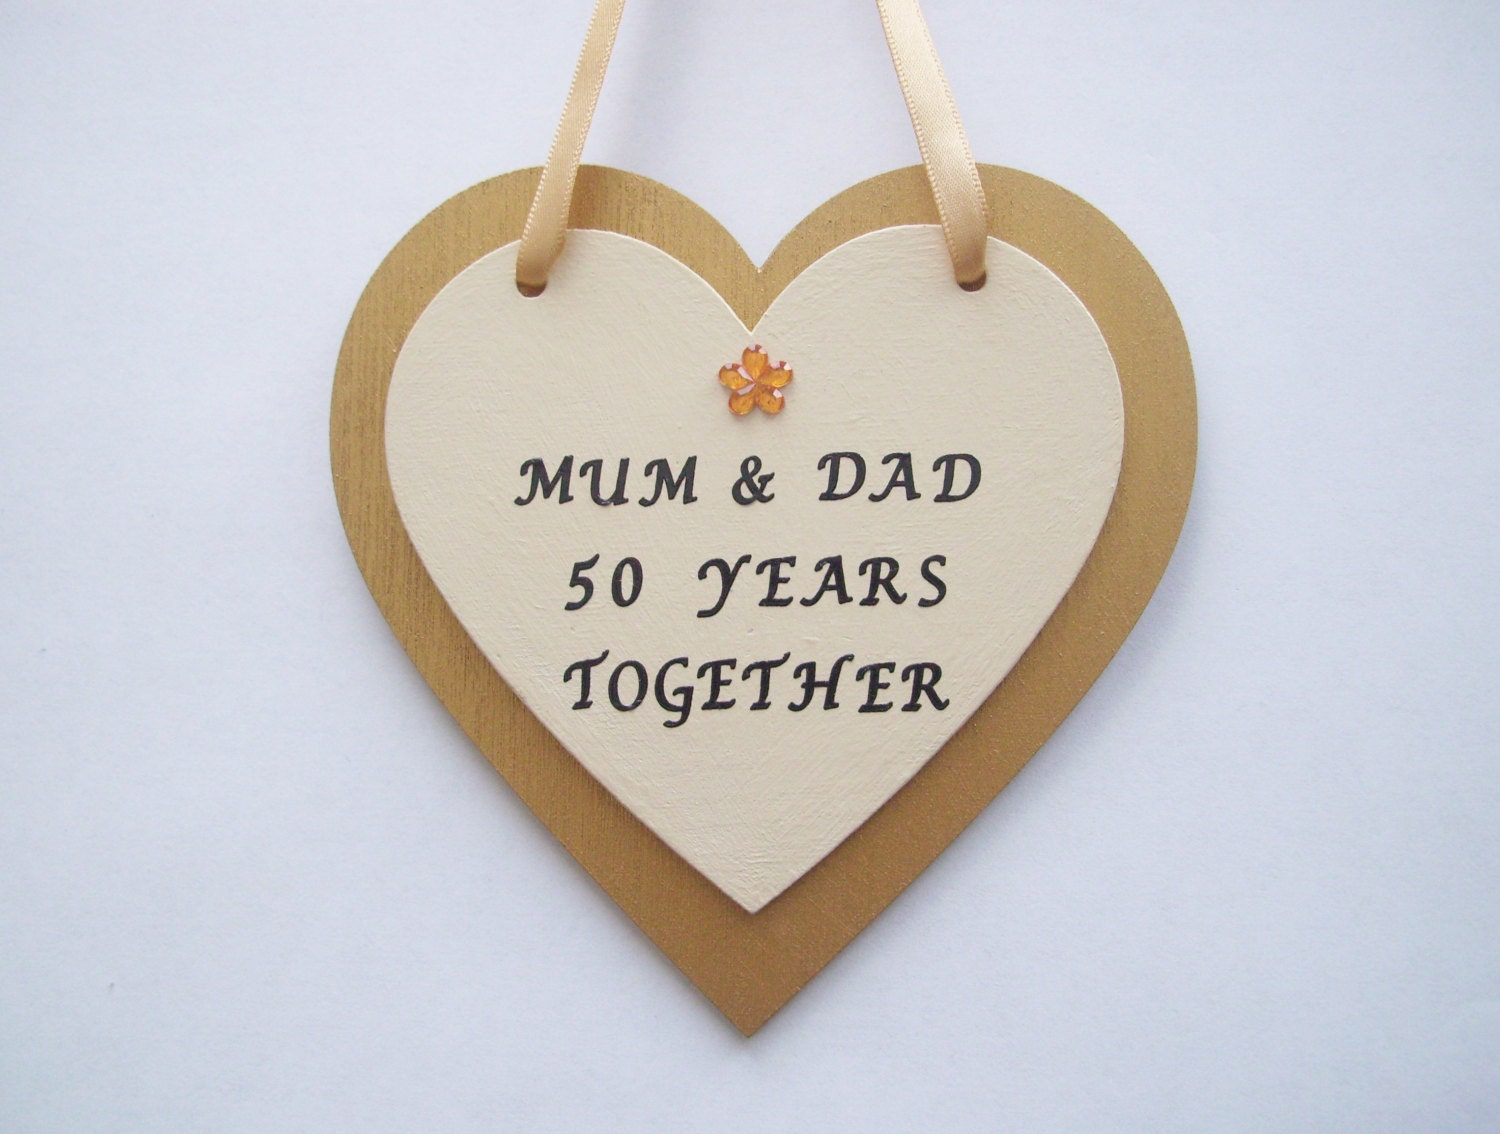 Fiftieth Wedding Anniversary Gifts: Personalised 50th Golden Wedding Anniversary Gift. Wooden